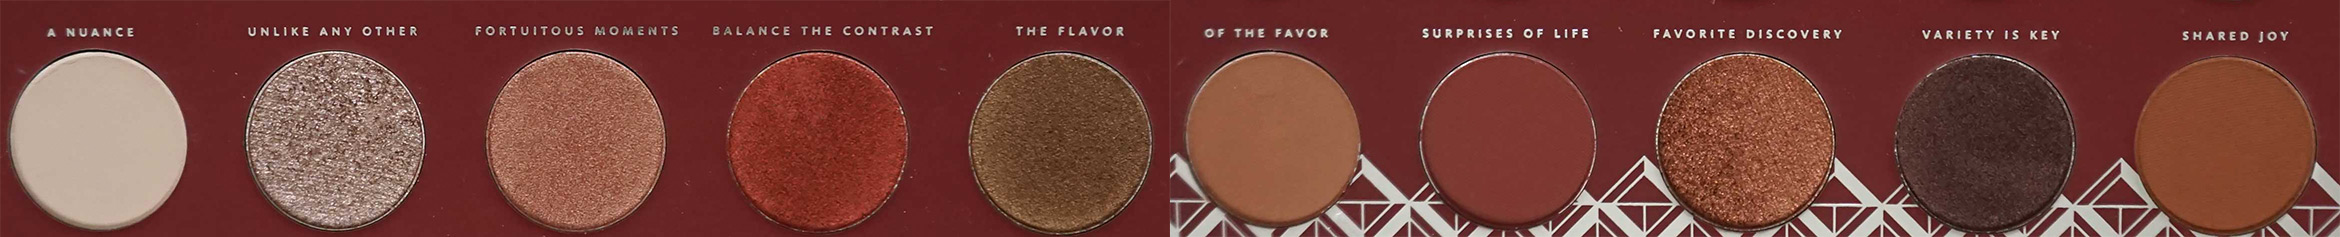 Zoeva-spice-of-life-eyeshadow-palette-review-5